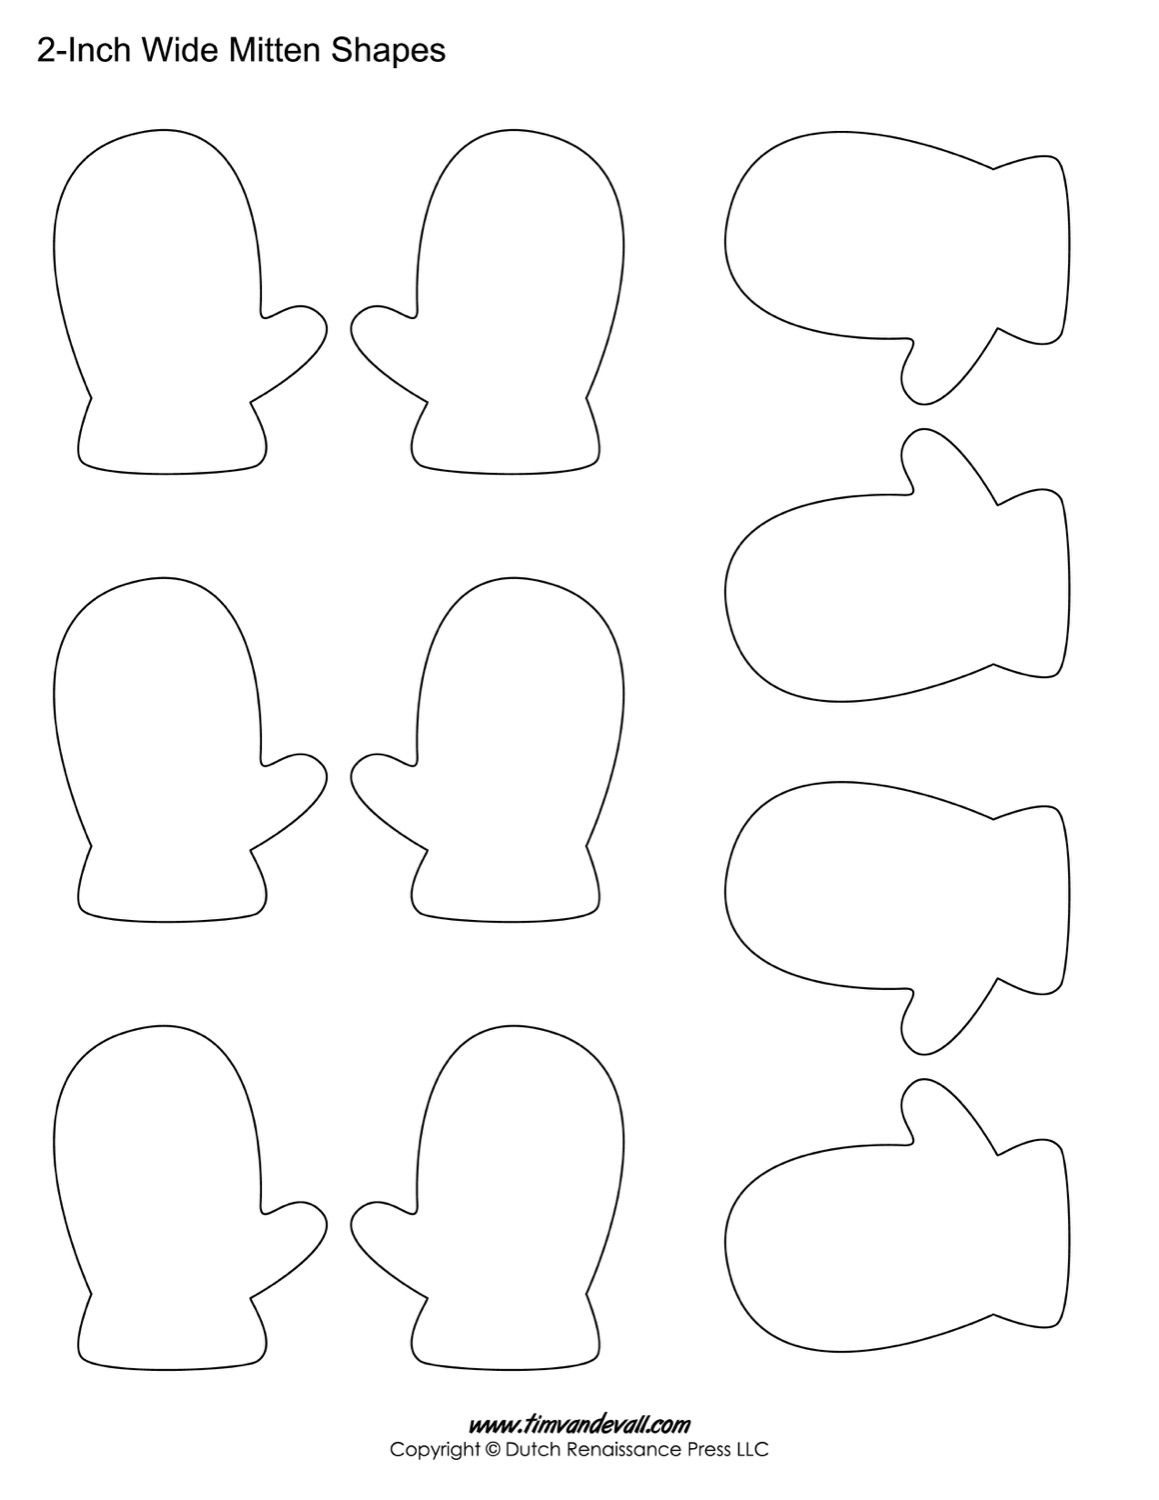 Mitten Shapes For Kids